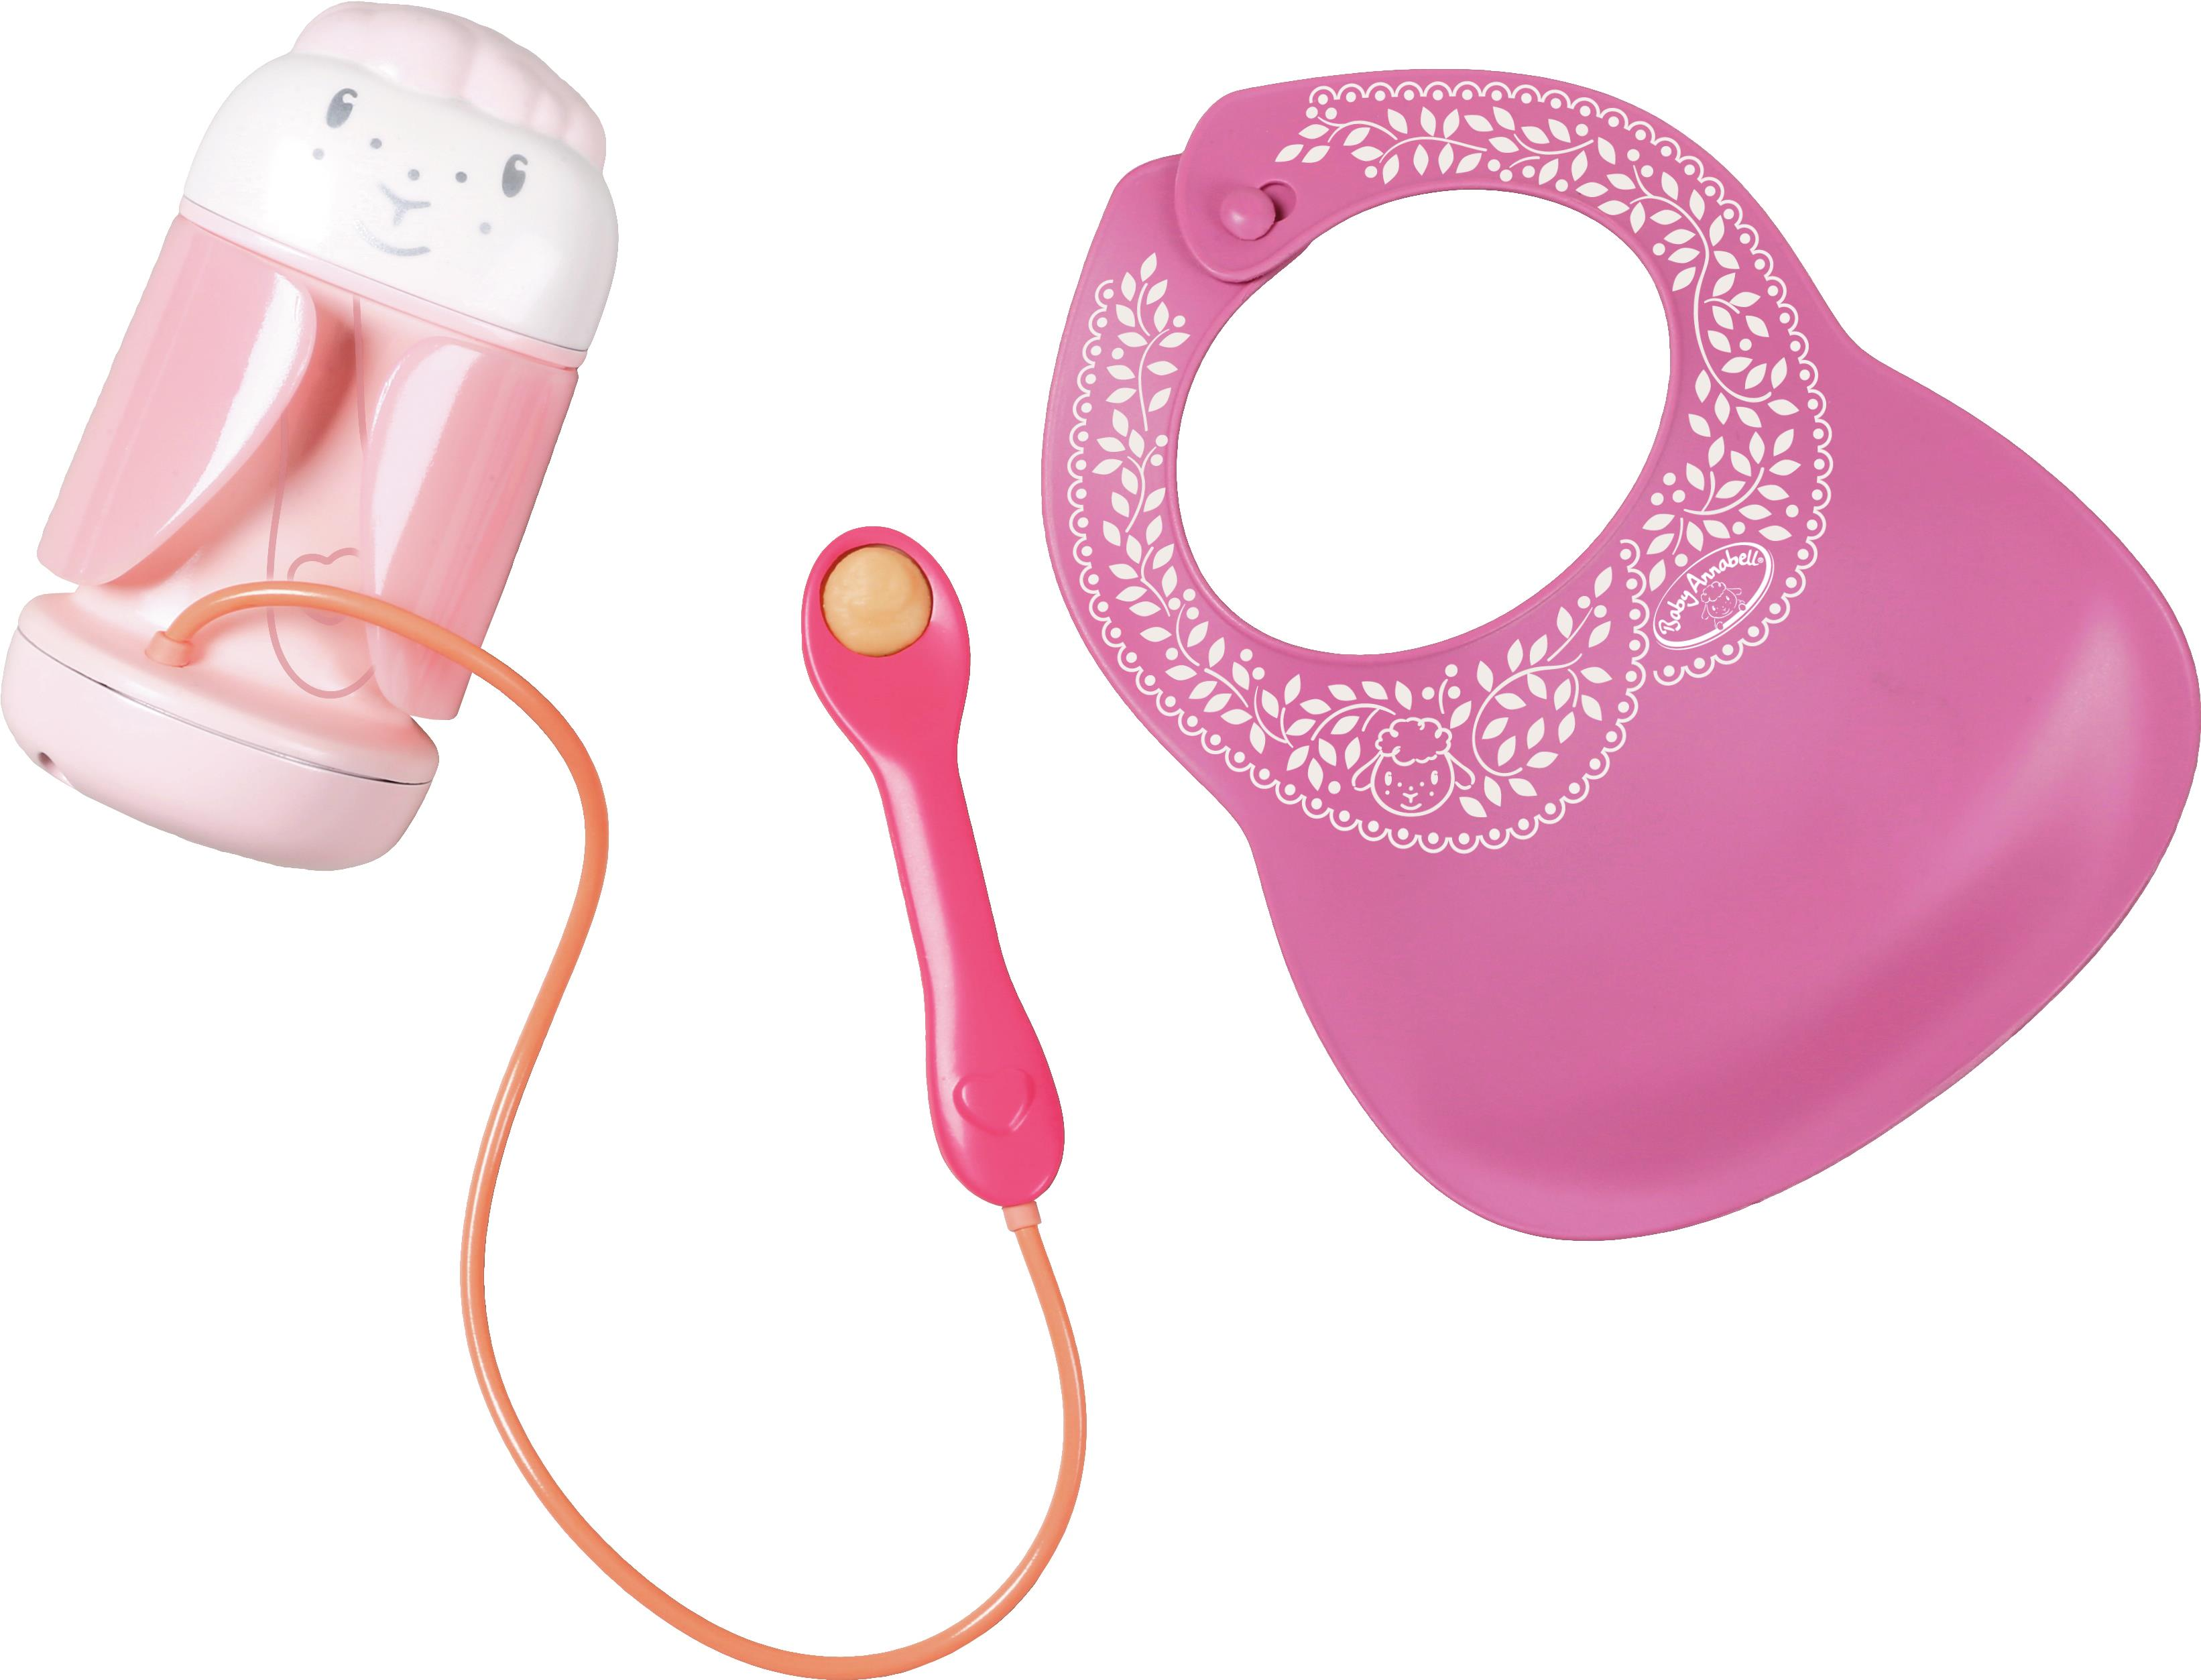 Baby Annabell Magic Meal - 3 Jahr(e) - Pink - 4...